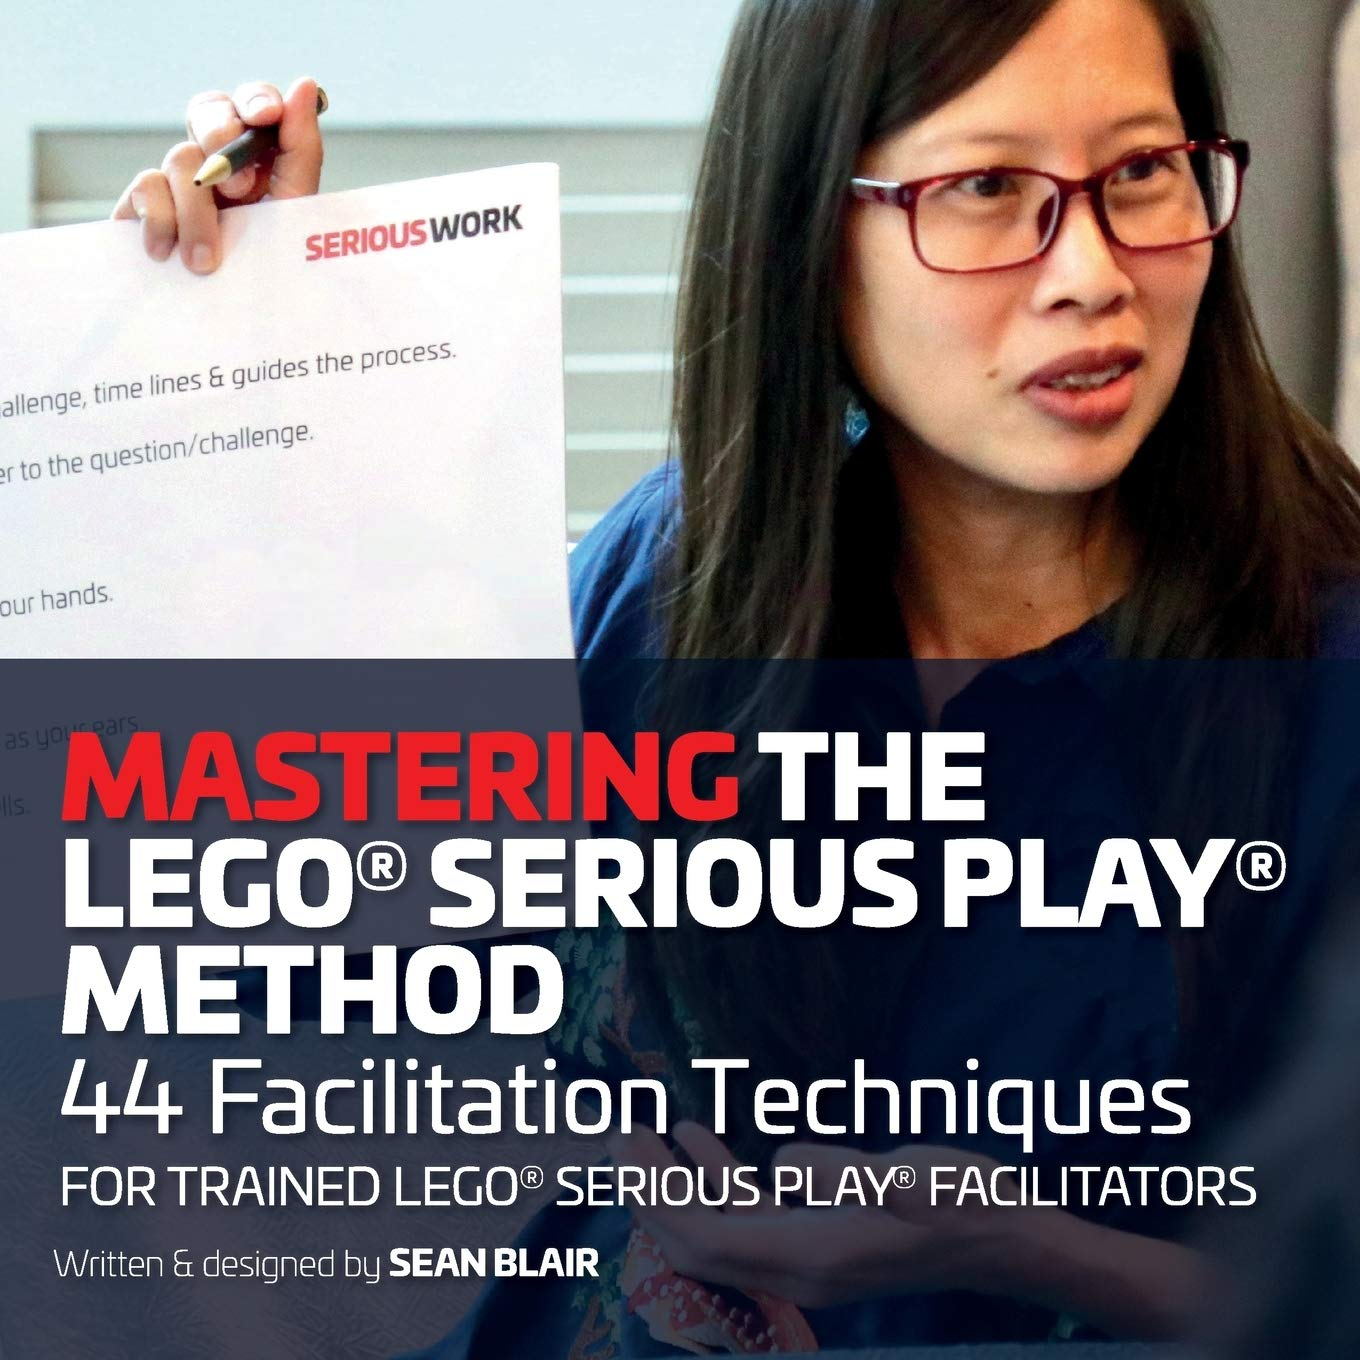 Image OfMastering The LEGO Serious Play Method: 44 Facilitation Techniques For Trained LEGO Serious Play Facilitators